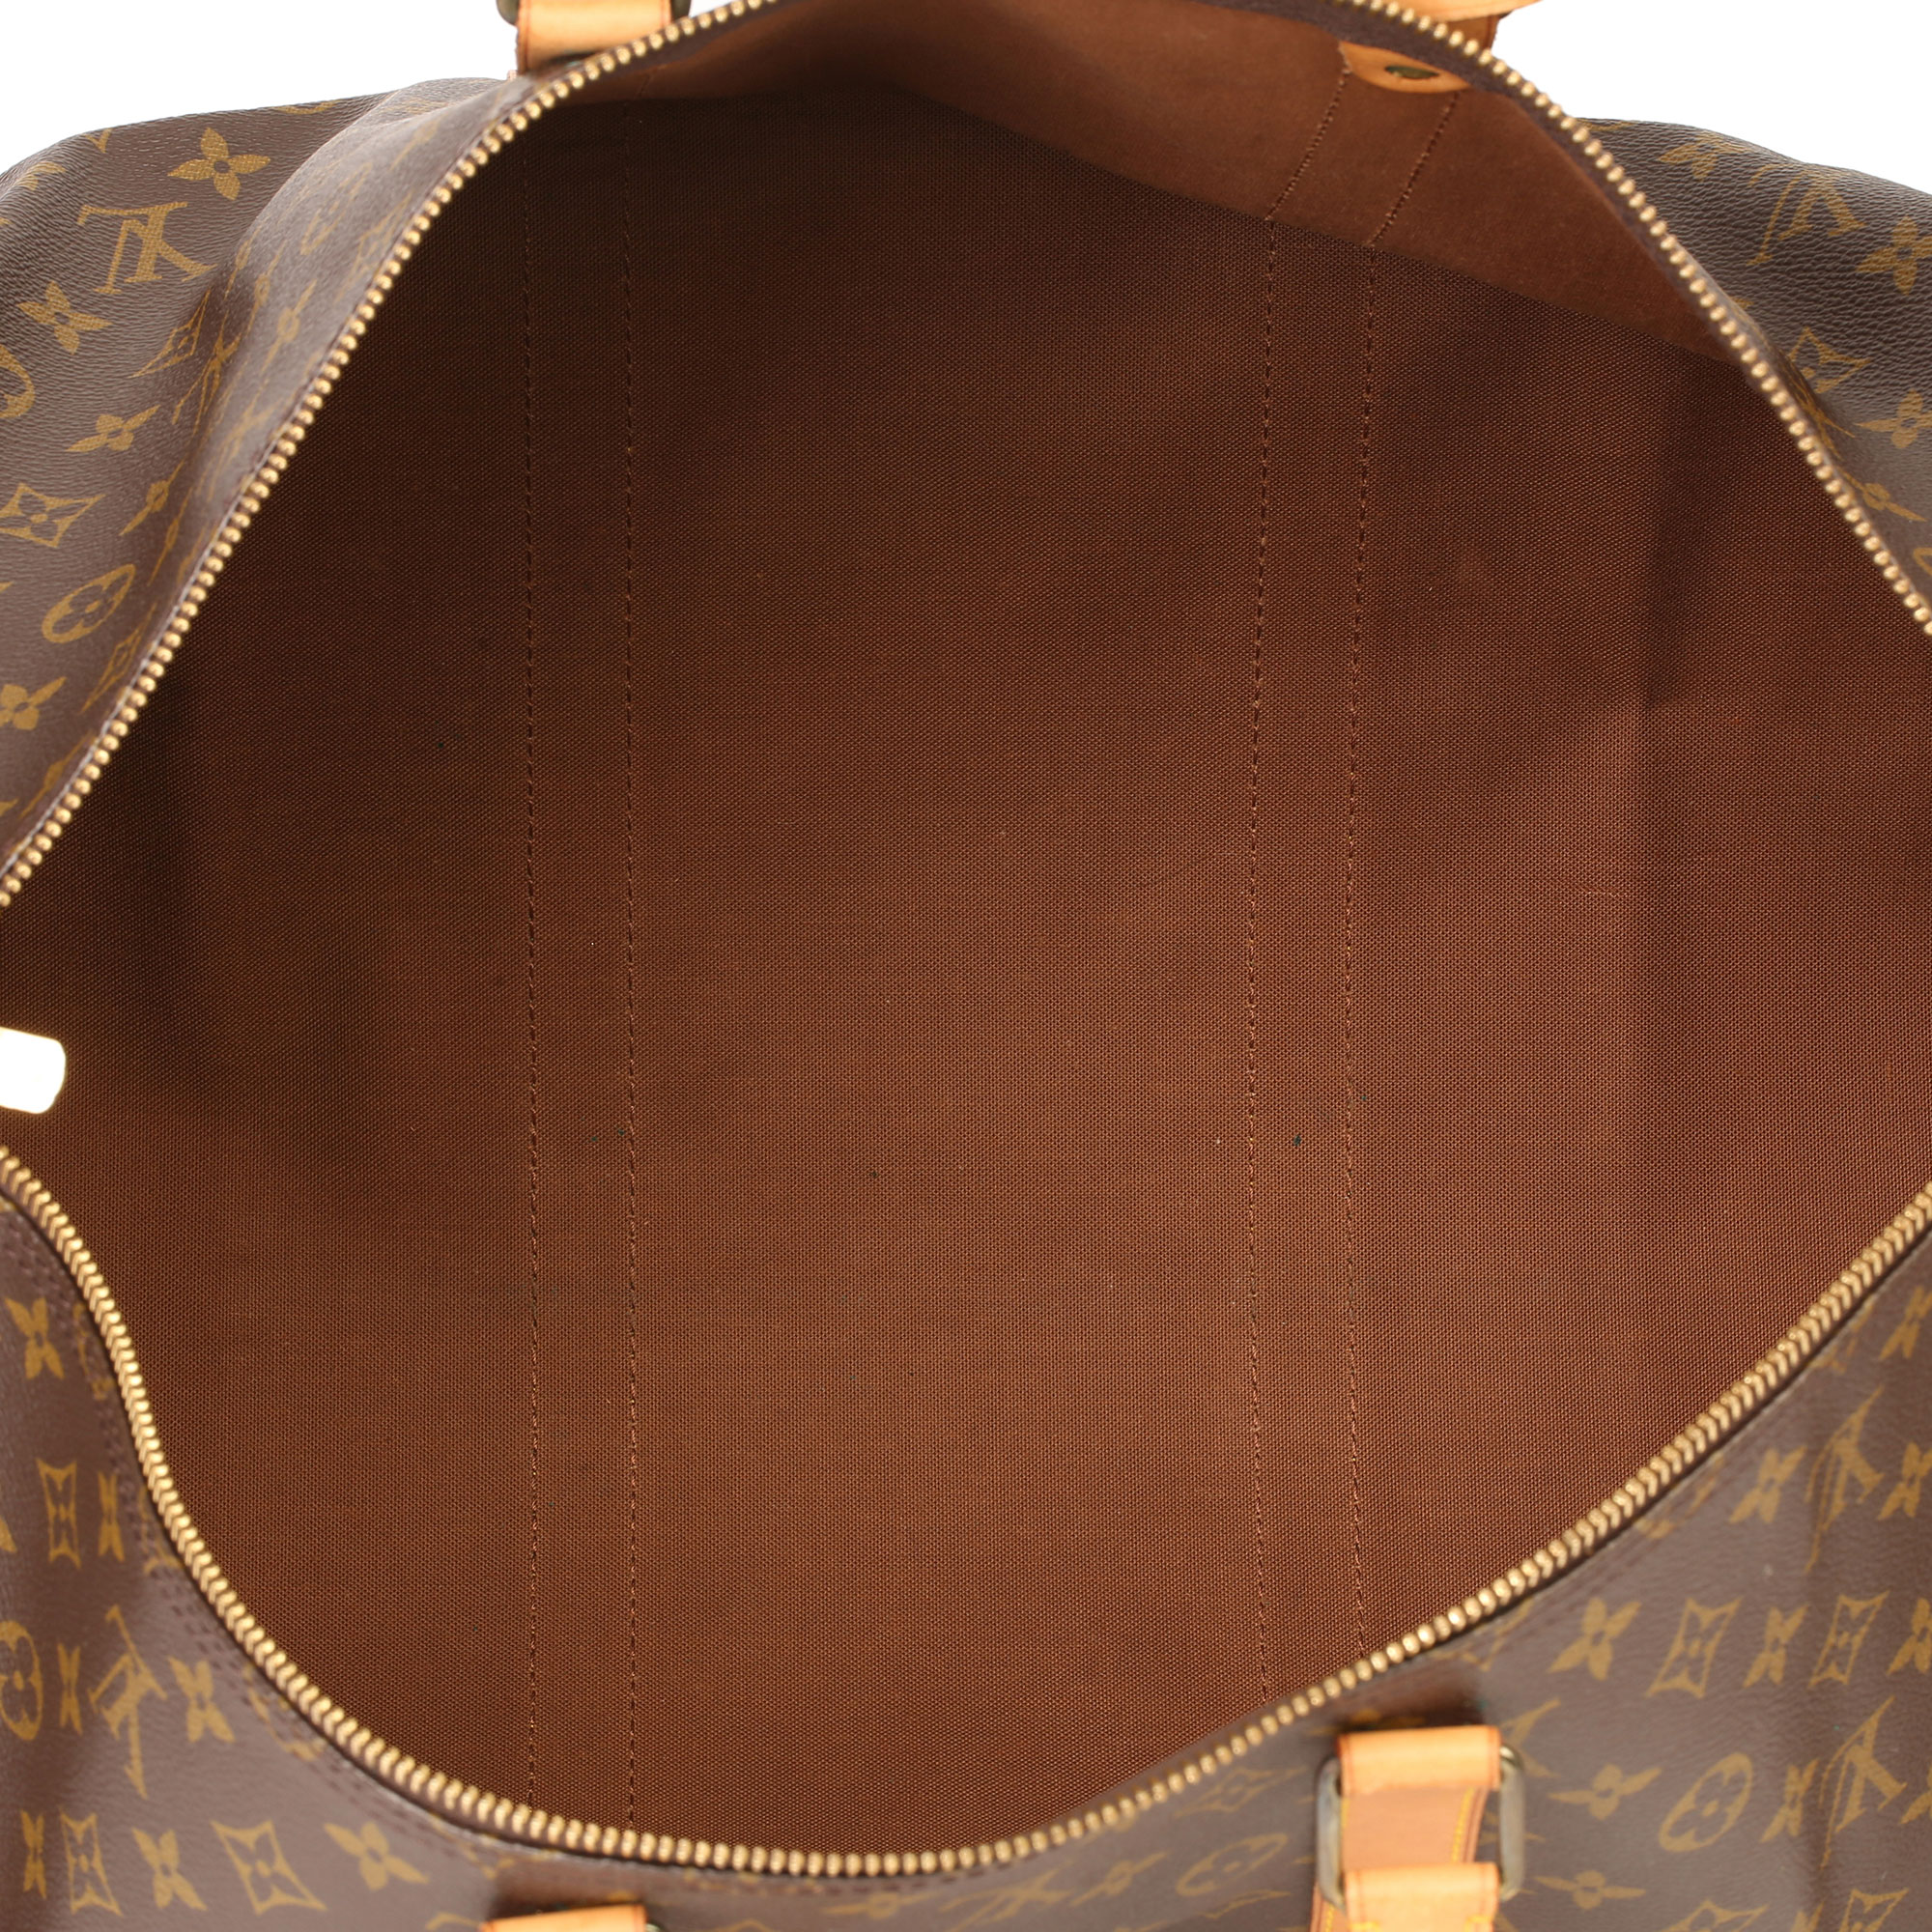 Louis Vuitton Brown Monogram Coated Canvas & Vachetta Leather Vintage Keepall 55 - Image 6 of 14